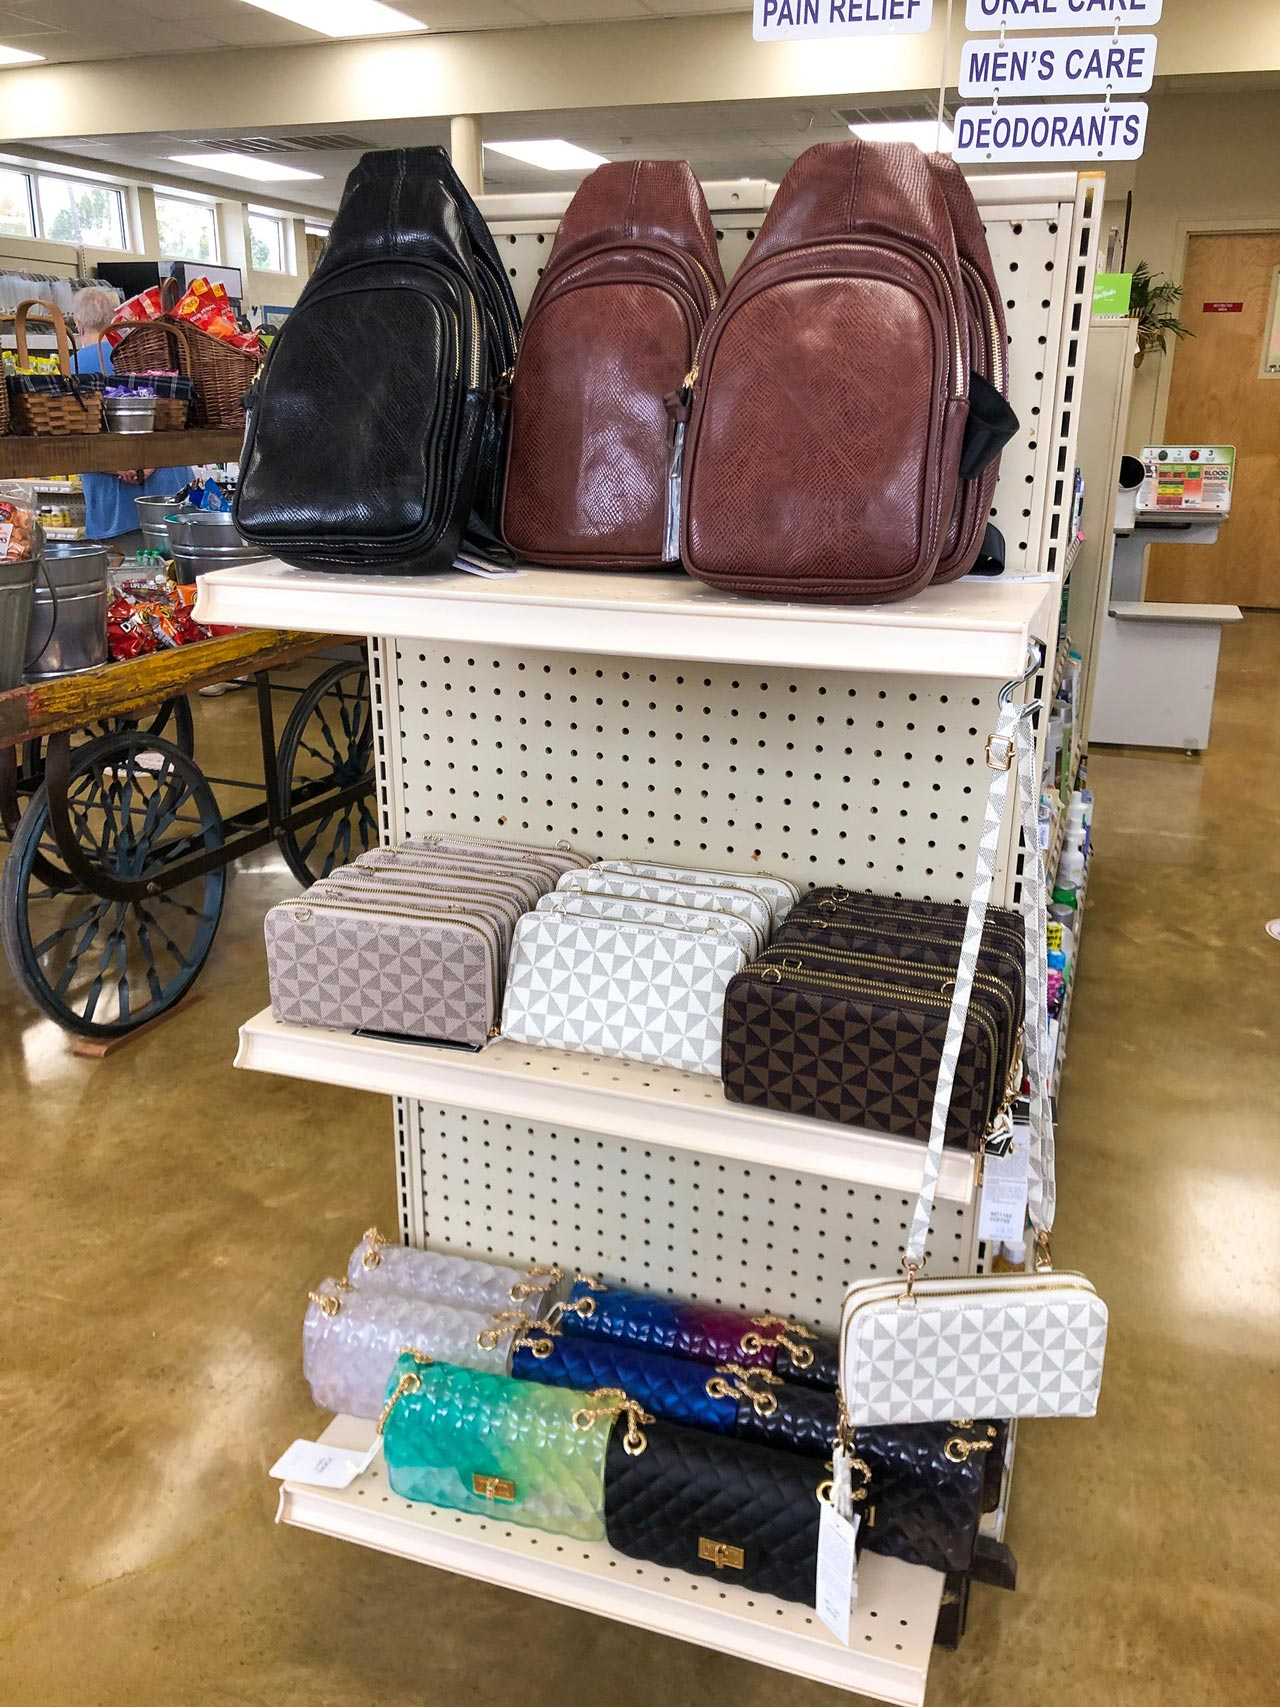 Shelf of different purse styles and sizes, including clutches.